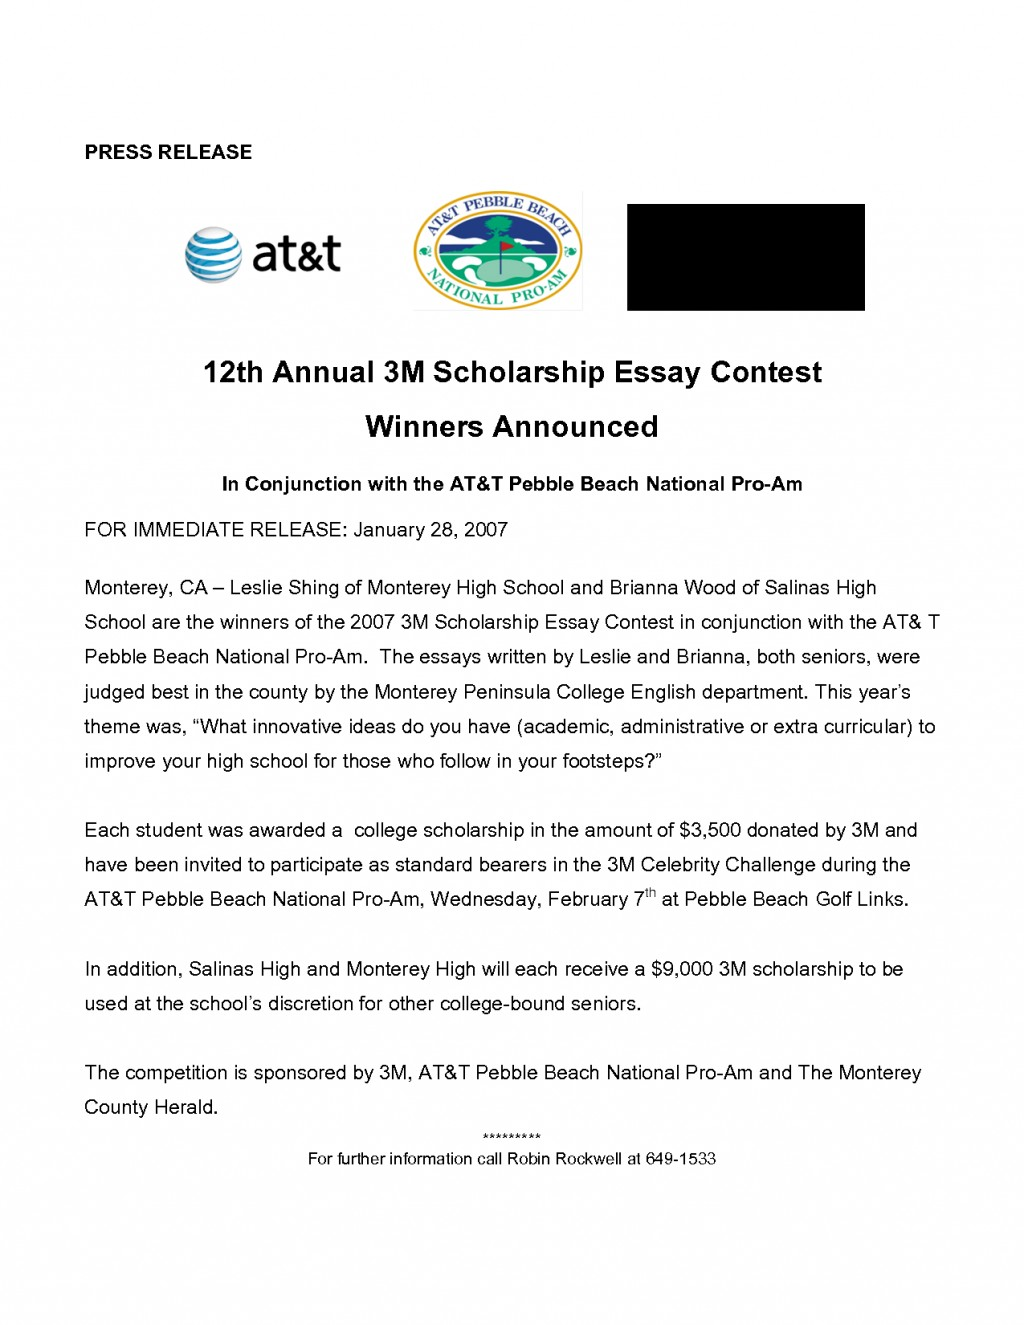 001 High School Scholarship Application Essay Help Contests For Juniors Scholarships 3 No Example Breathtaking Seniors 2017 2019 Louisiana Large